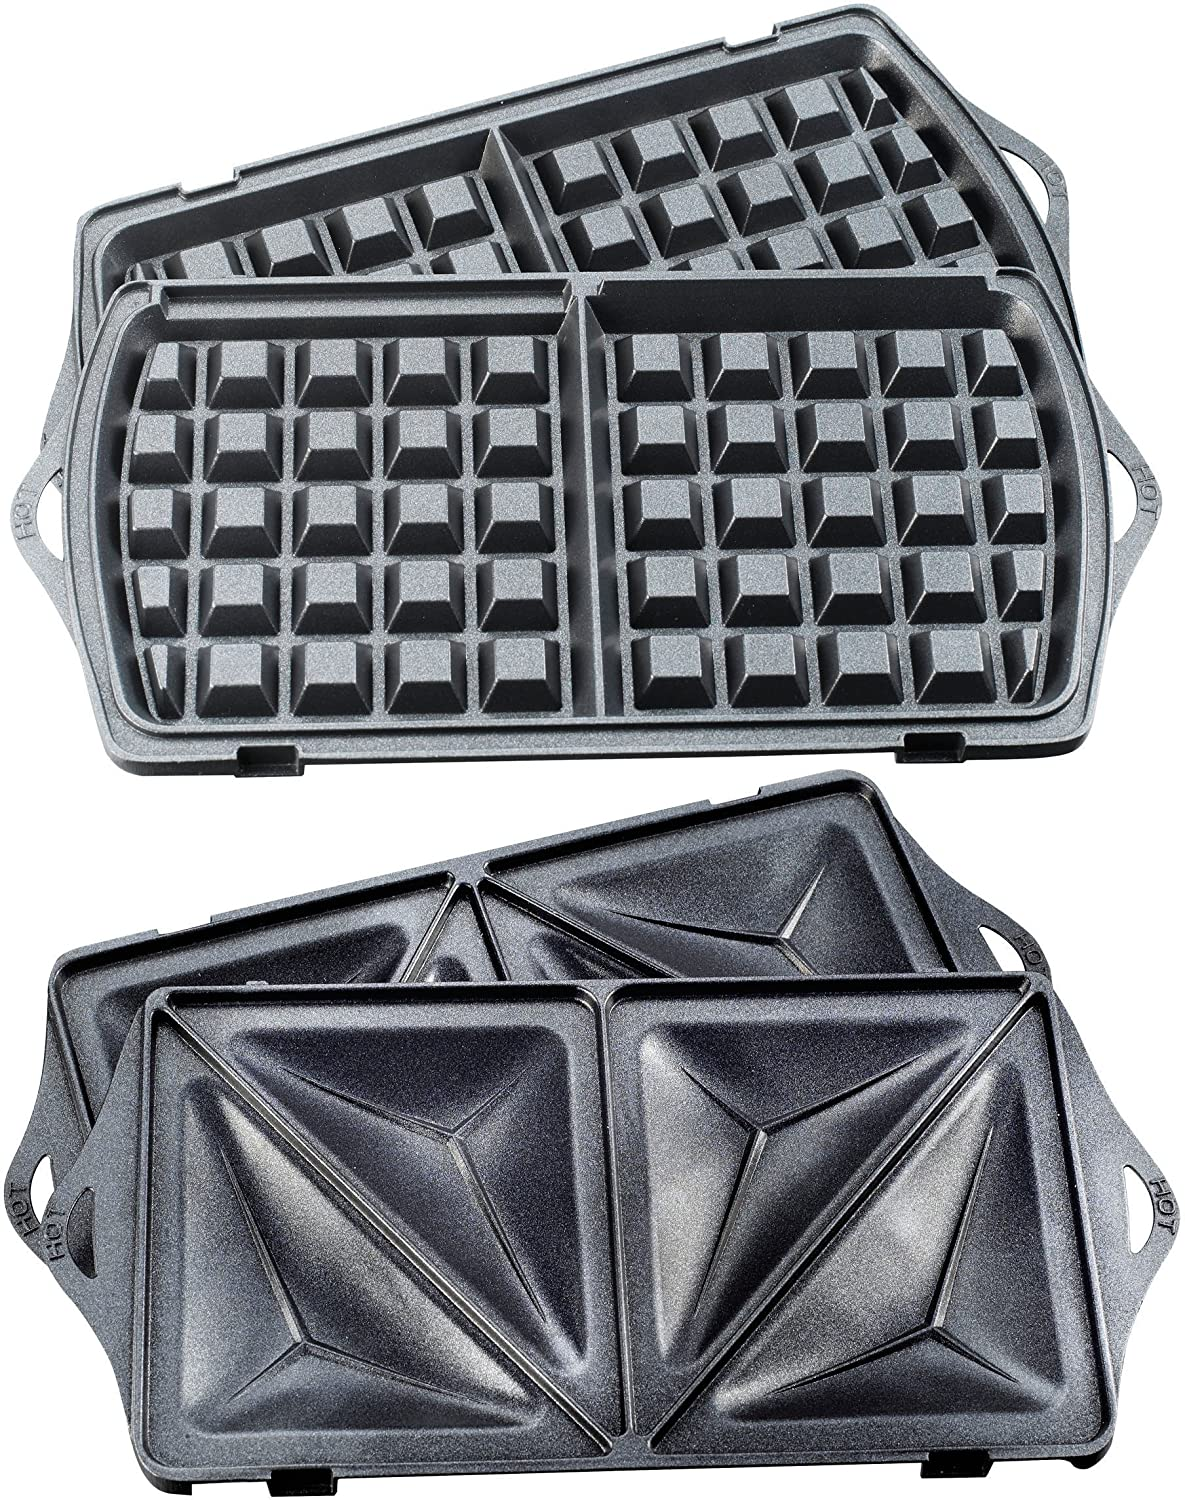 recipe: panini waffle maker removable plates [21]